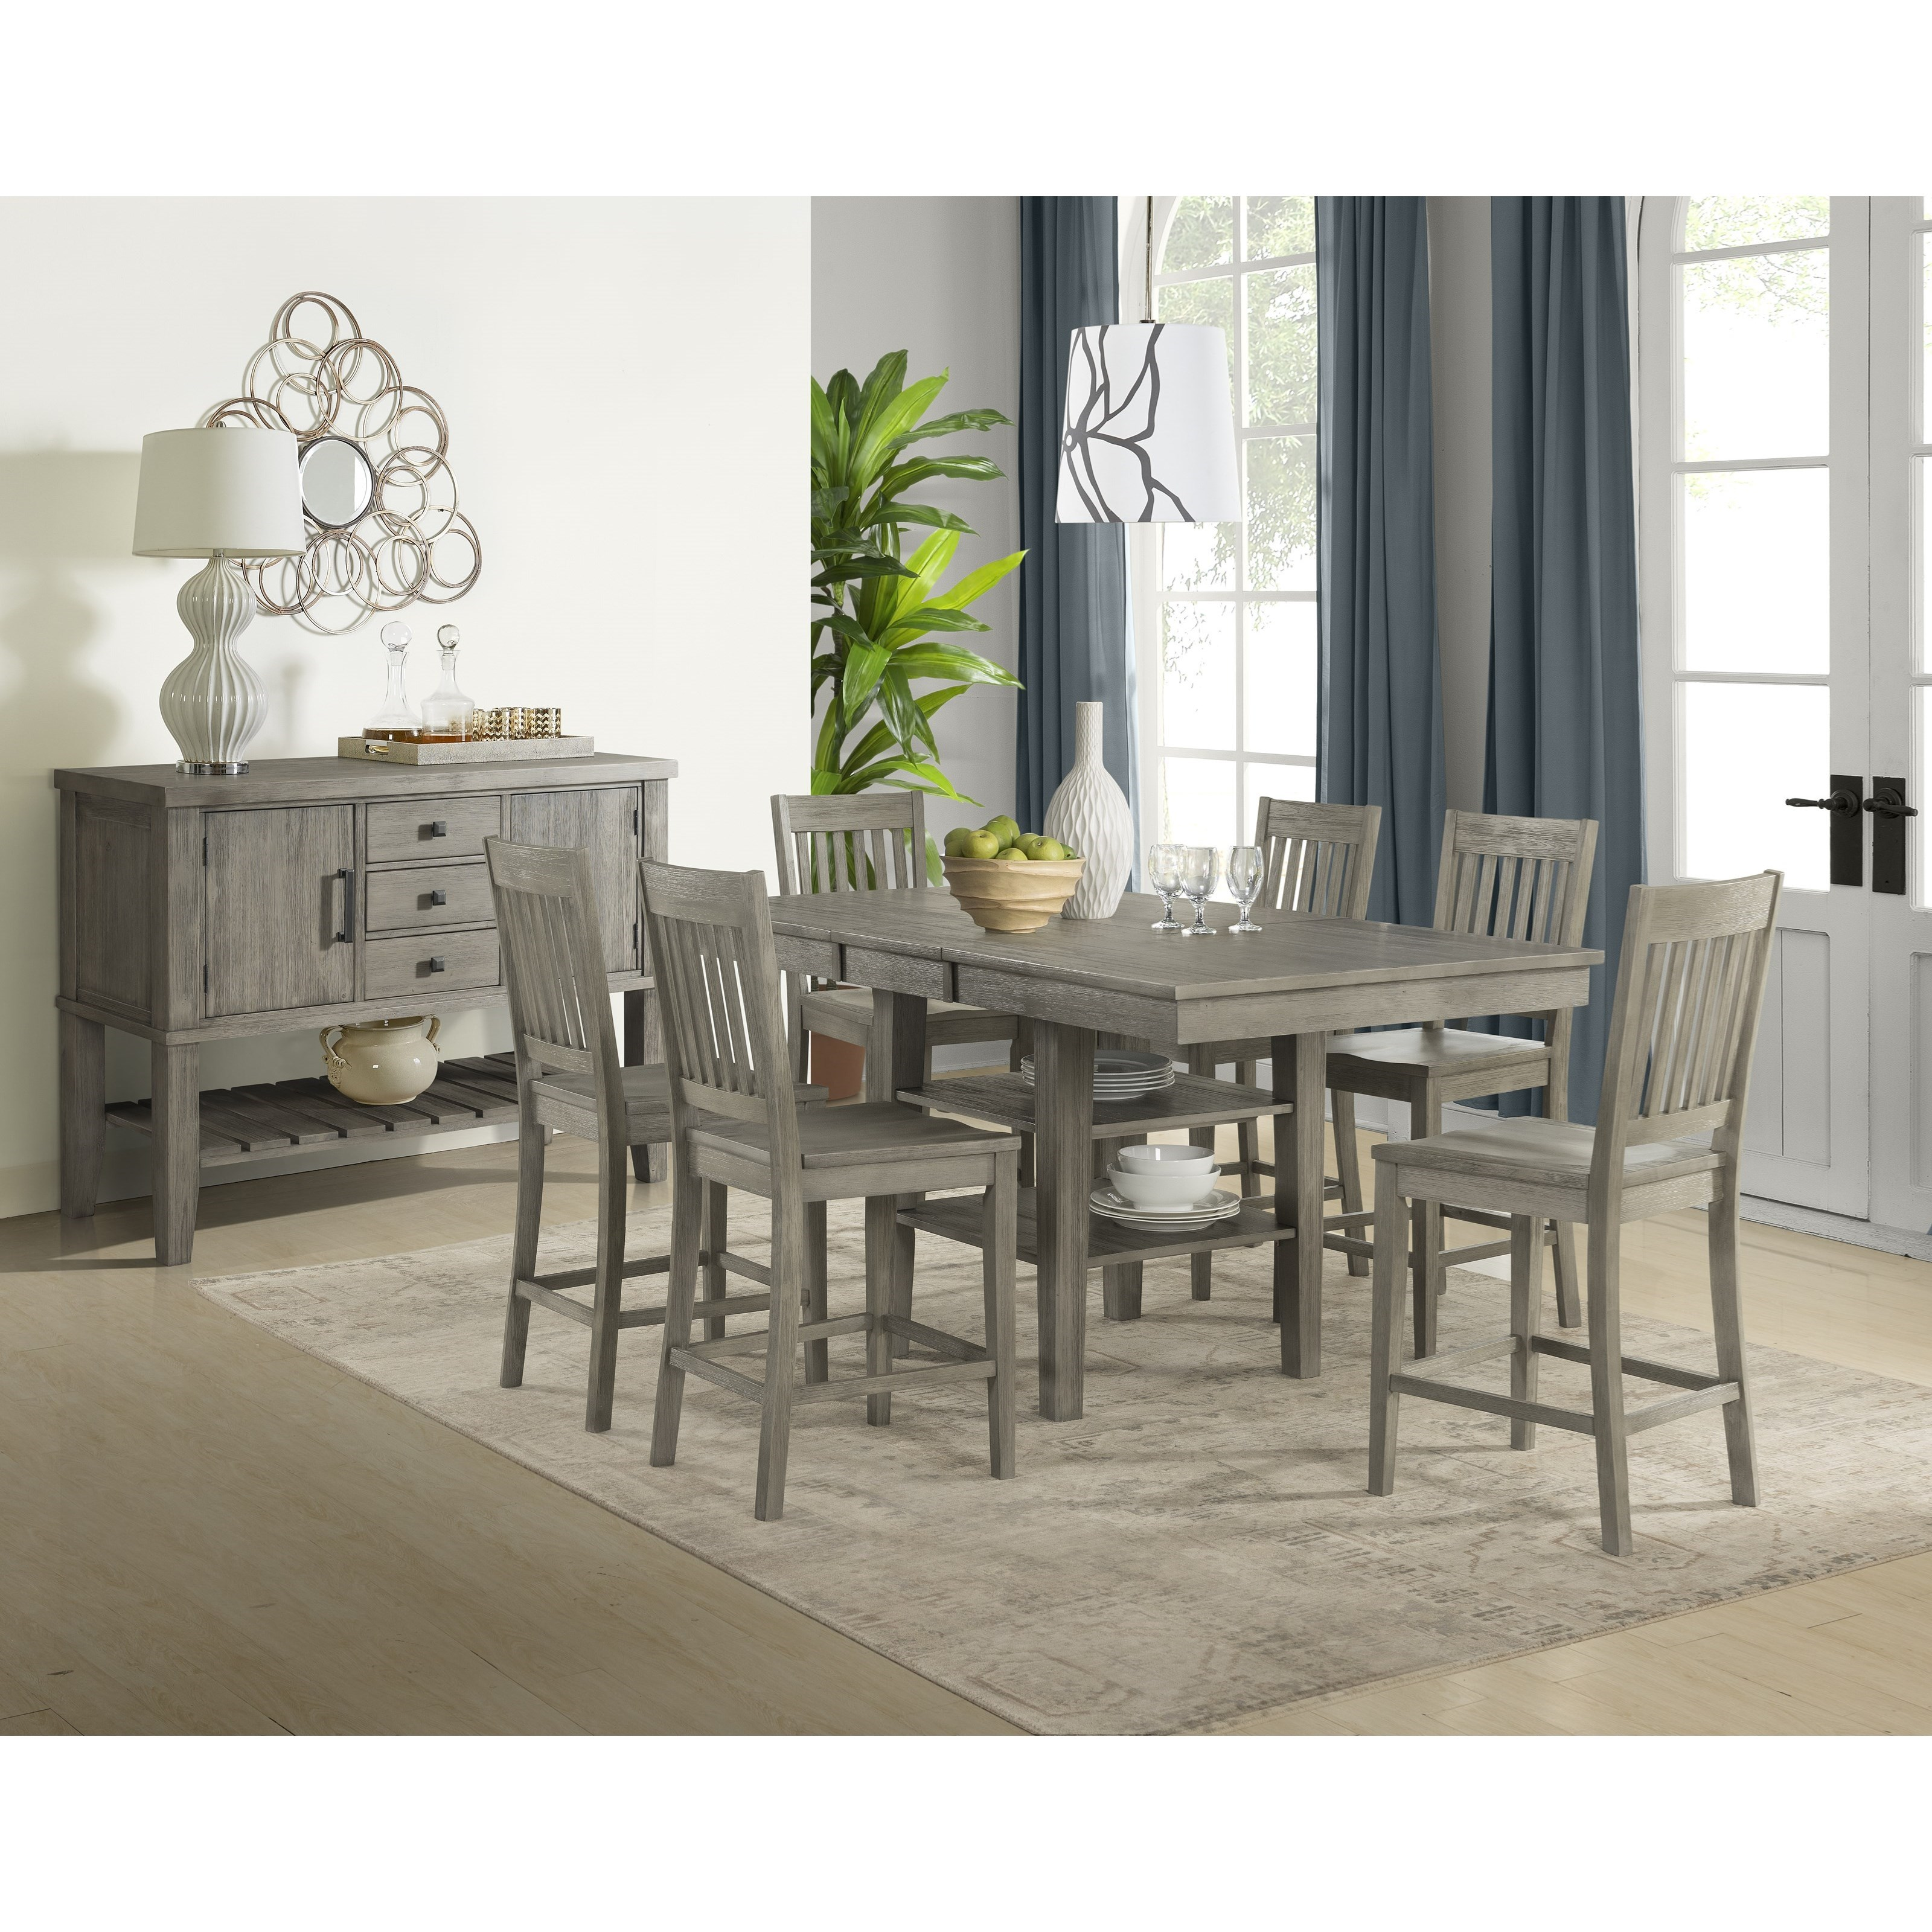 Huron Formal Dining Room Goup by AAmerica at Turk Furniture